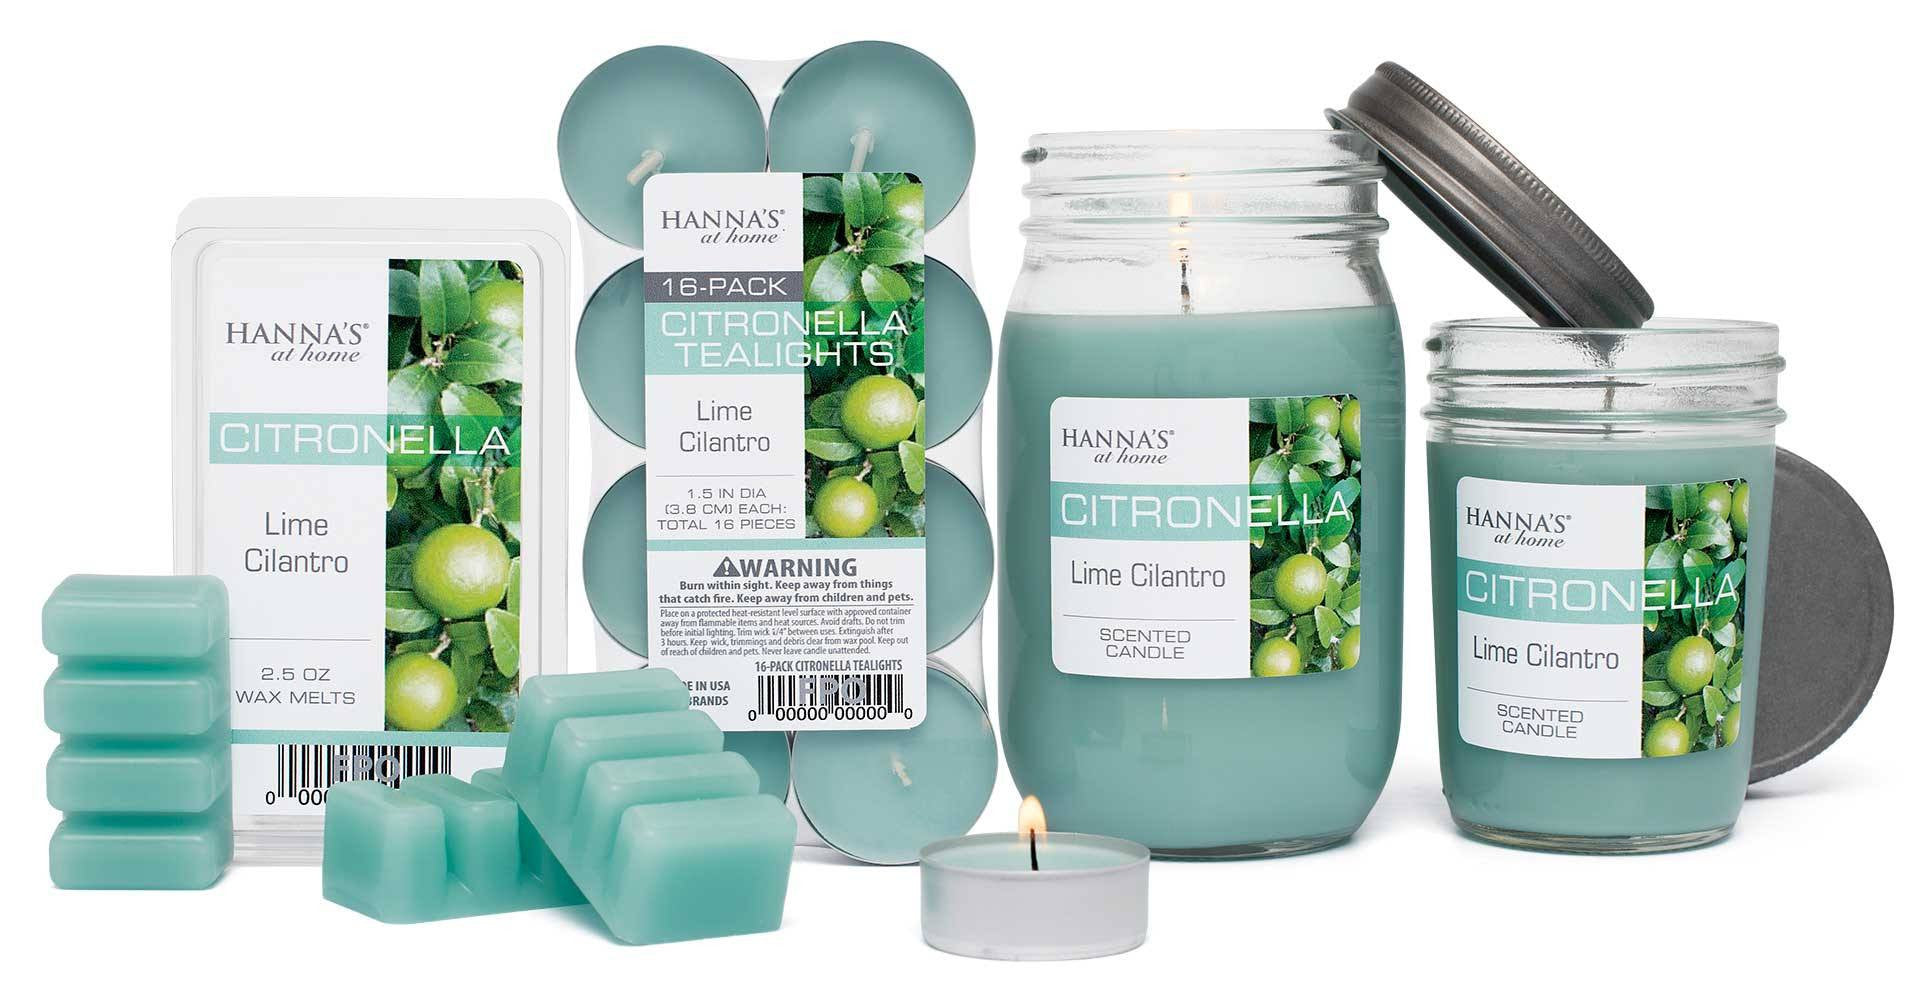 Citronella Lime Cilantro Scented Pint Jar Candle - Candlemart.com